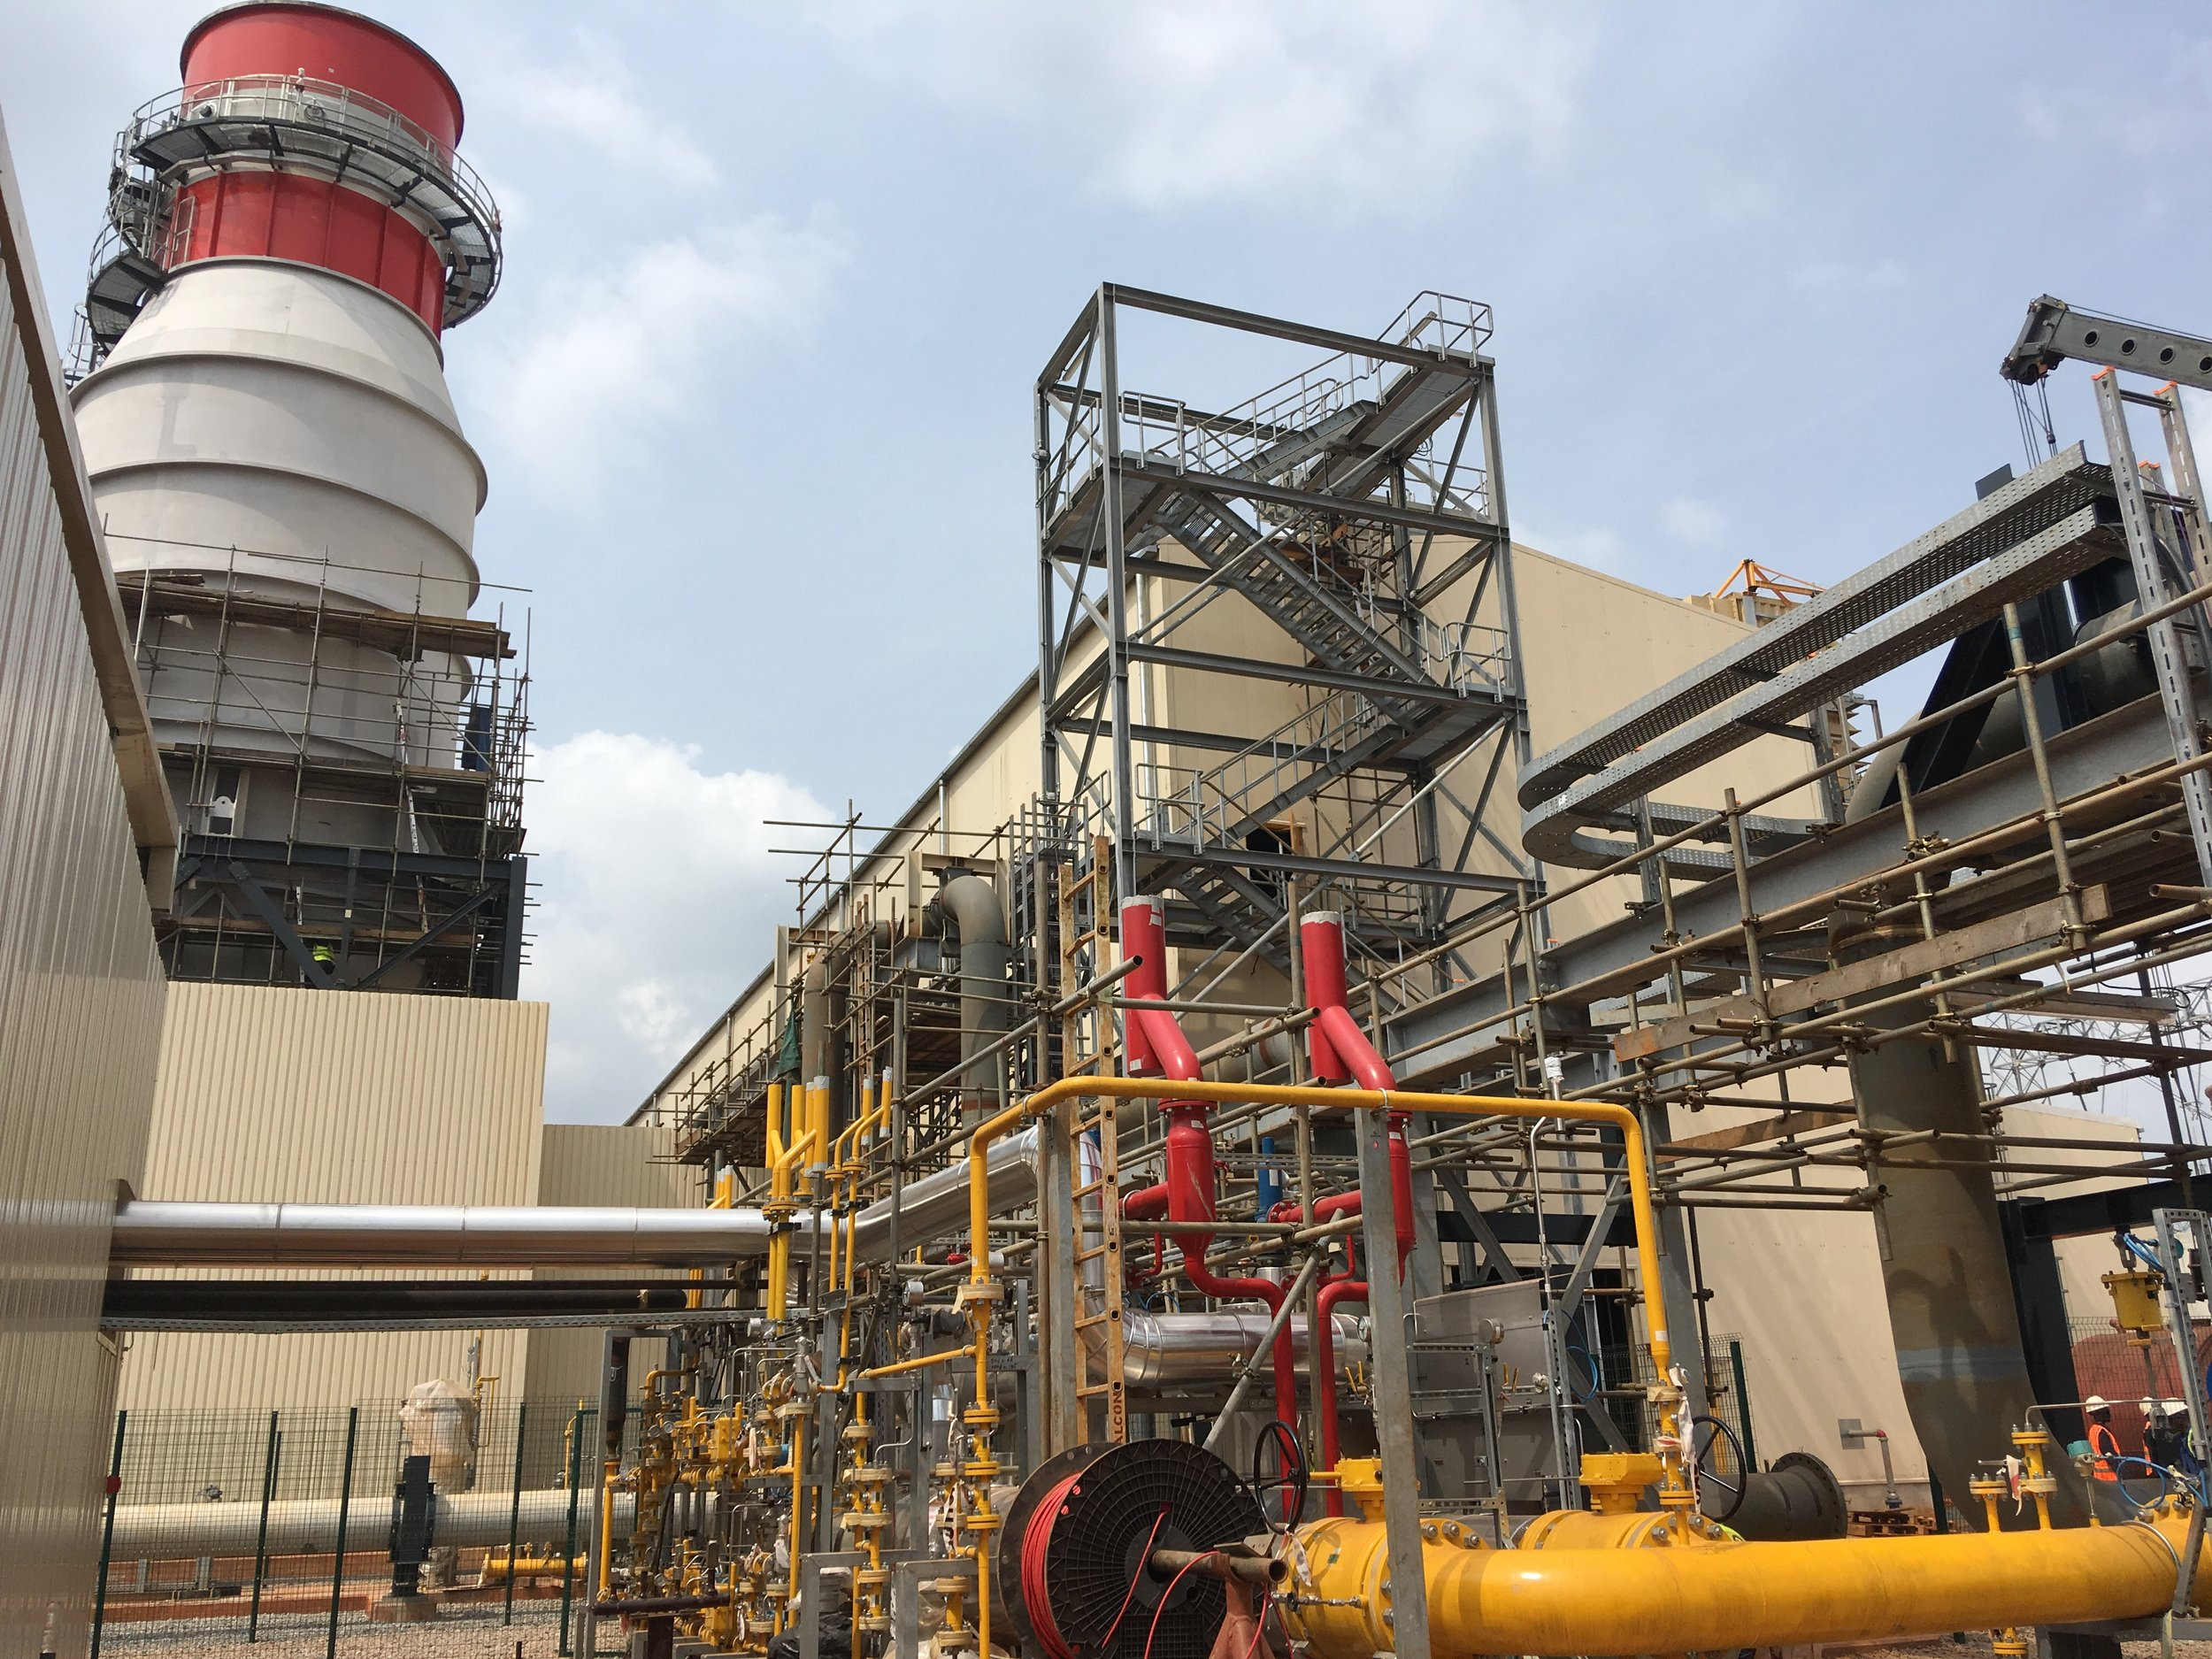 Azura-Edo IPP - The Azura-Edo IPP is a 459MW open cycle gas turbine power station located in Benin City Nigeria. It comprises three